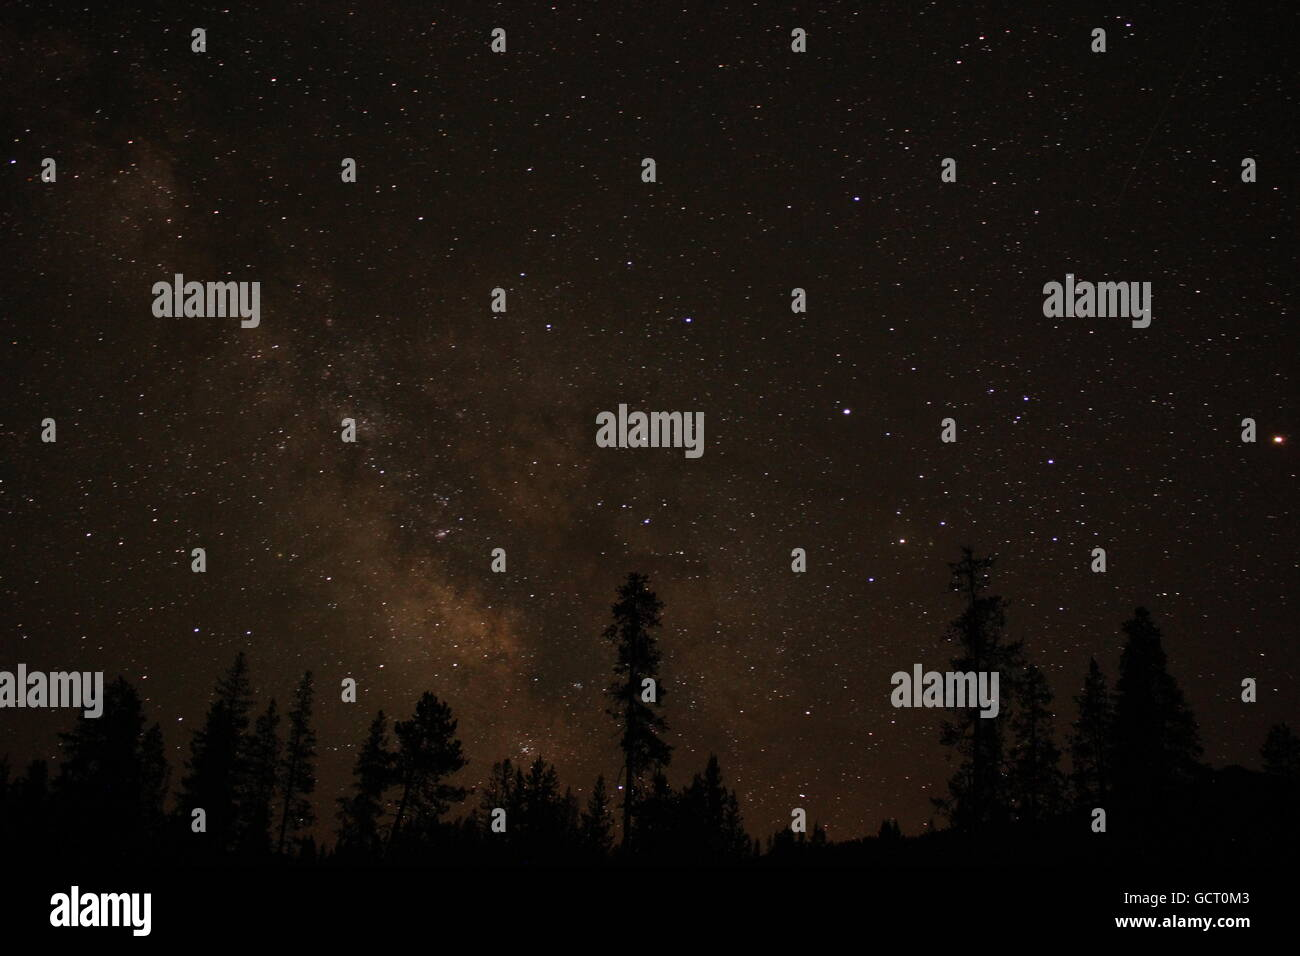 Stars, galaxies and space dust illuminate the night sky in the mountains. - Stock Image